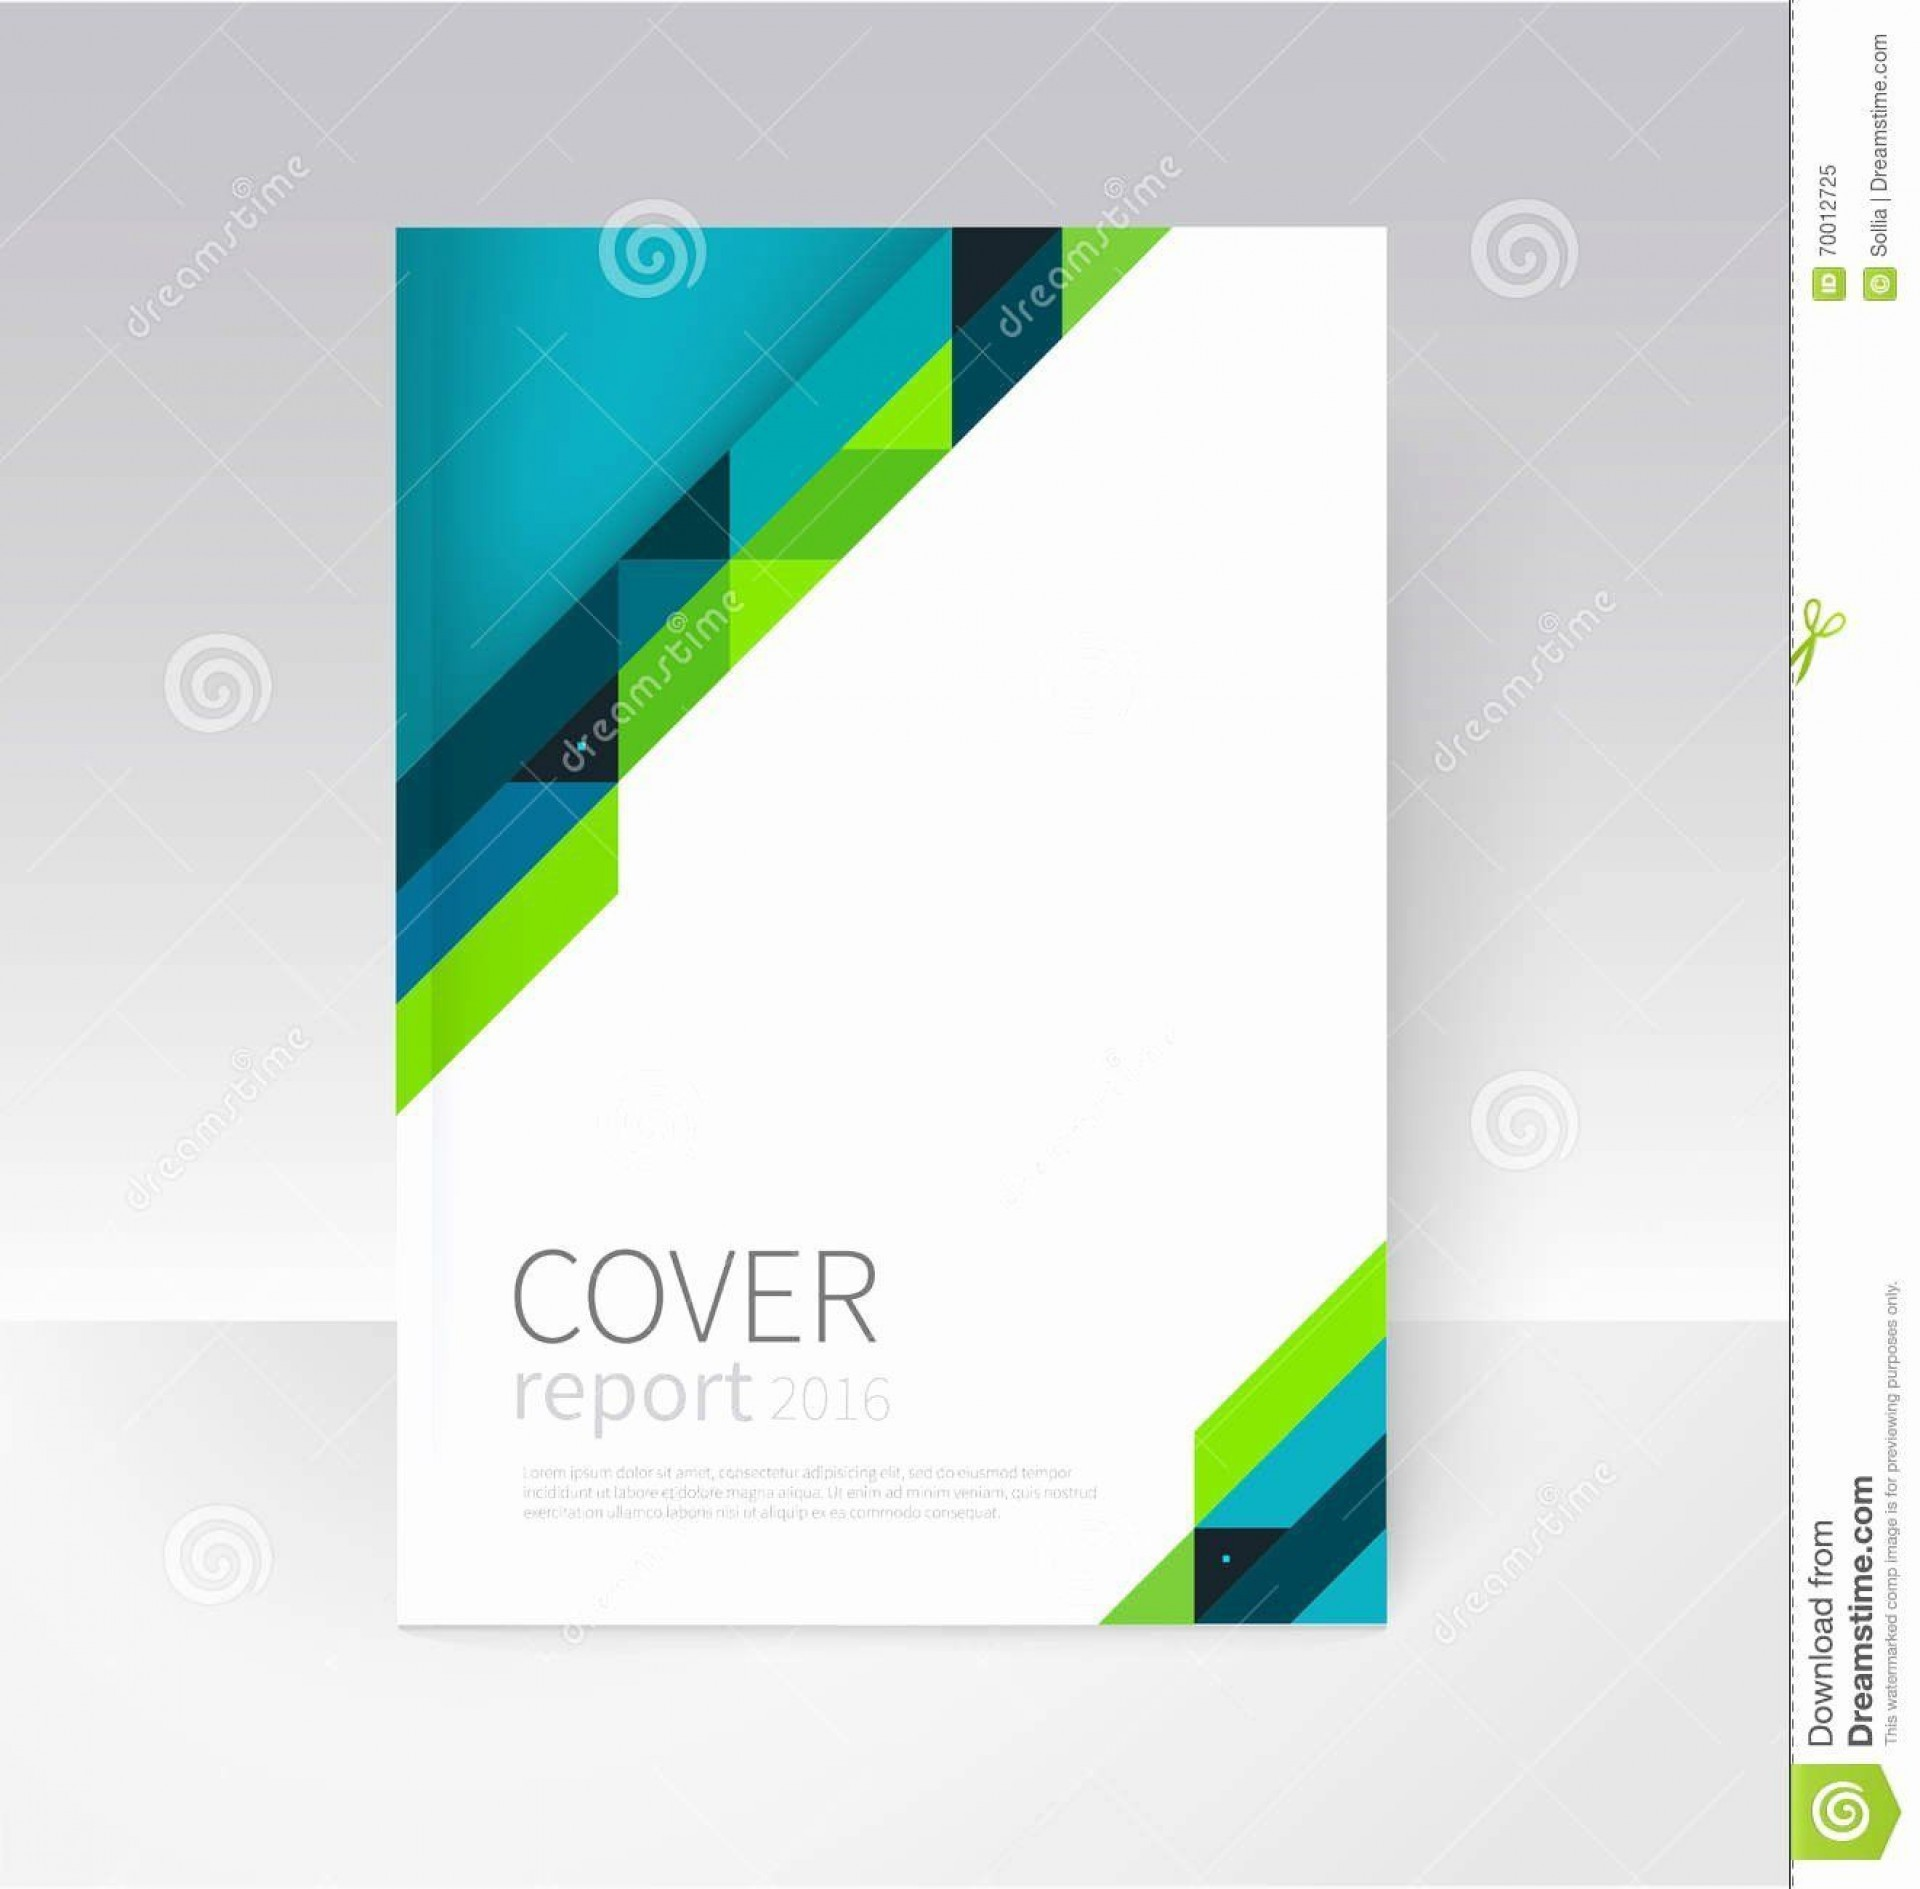 001 Formidable Book Front Page Design Template Free Download Inspiration  Cover Psd1920